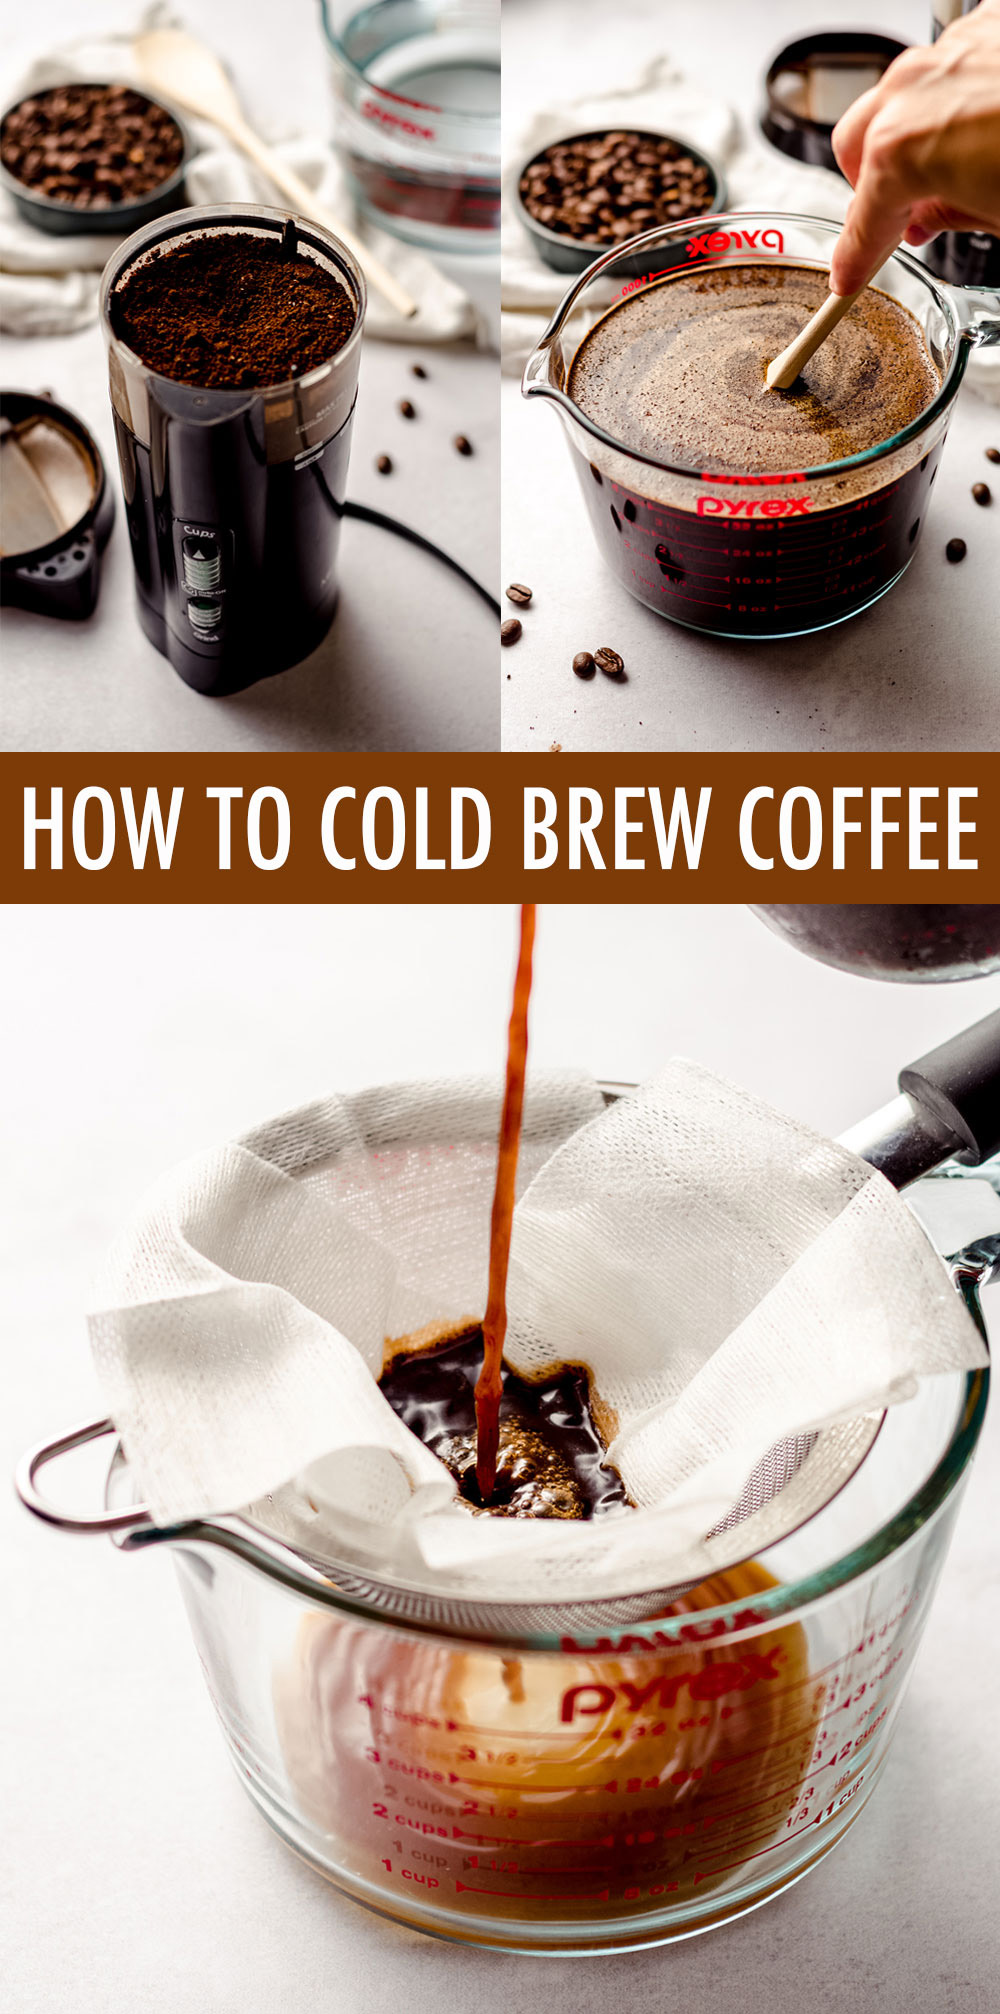 Making cold brew at home is a lot simpler than you think it is. All you need are your favorite coffee beans, cold water, and 24 hours for cold coffee that is smooth, ever so slightly sweet, and still bursting with bold coffee flavor.